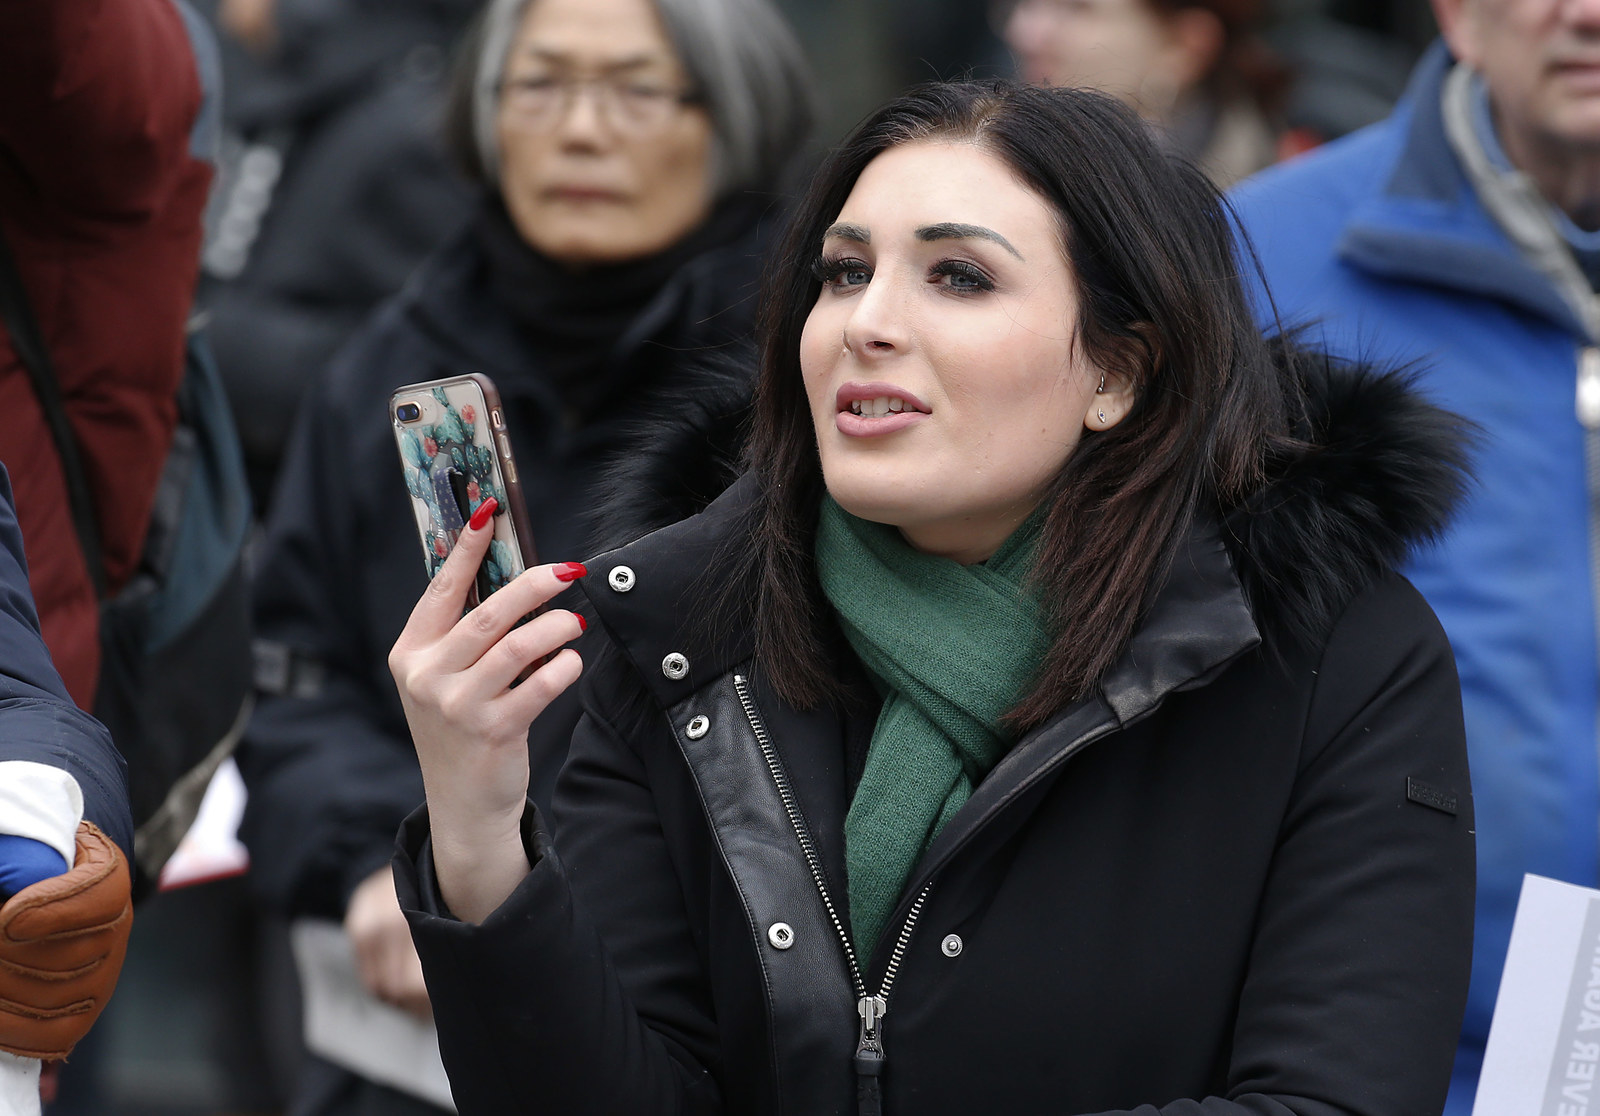 Facebook Bans Alex Jones, Paul Joseph Watson, Milo Yiannopoulos, And Laura Loomer